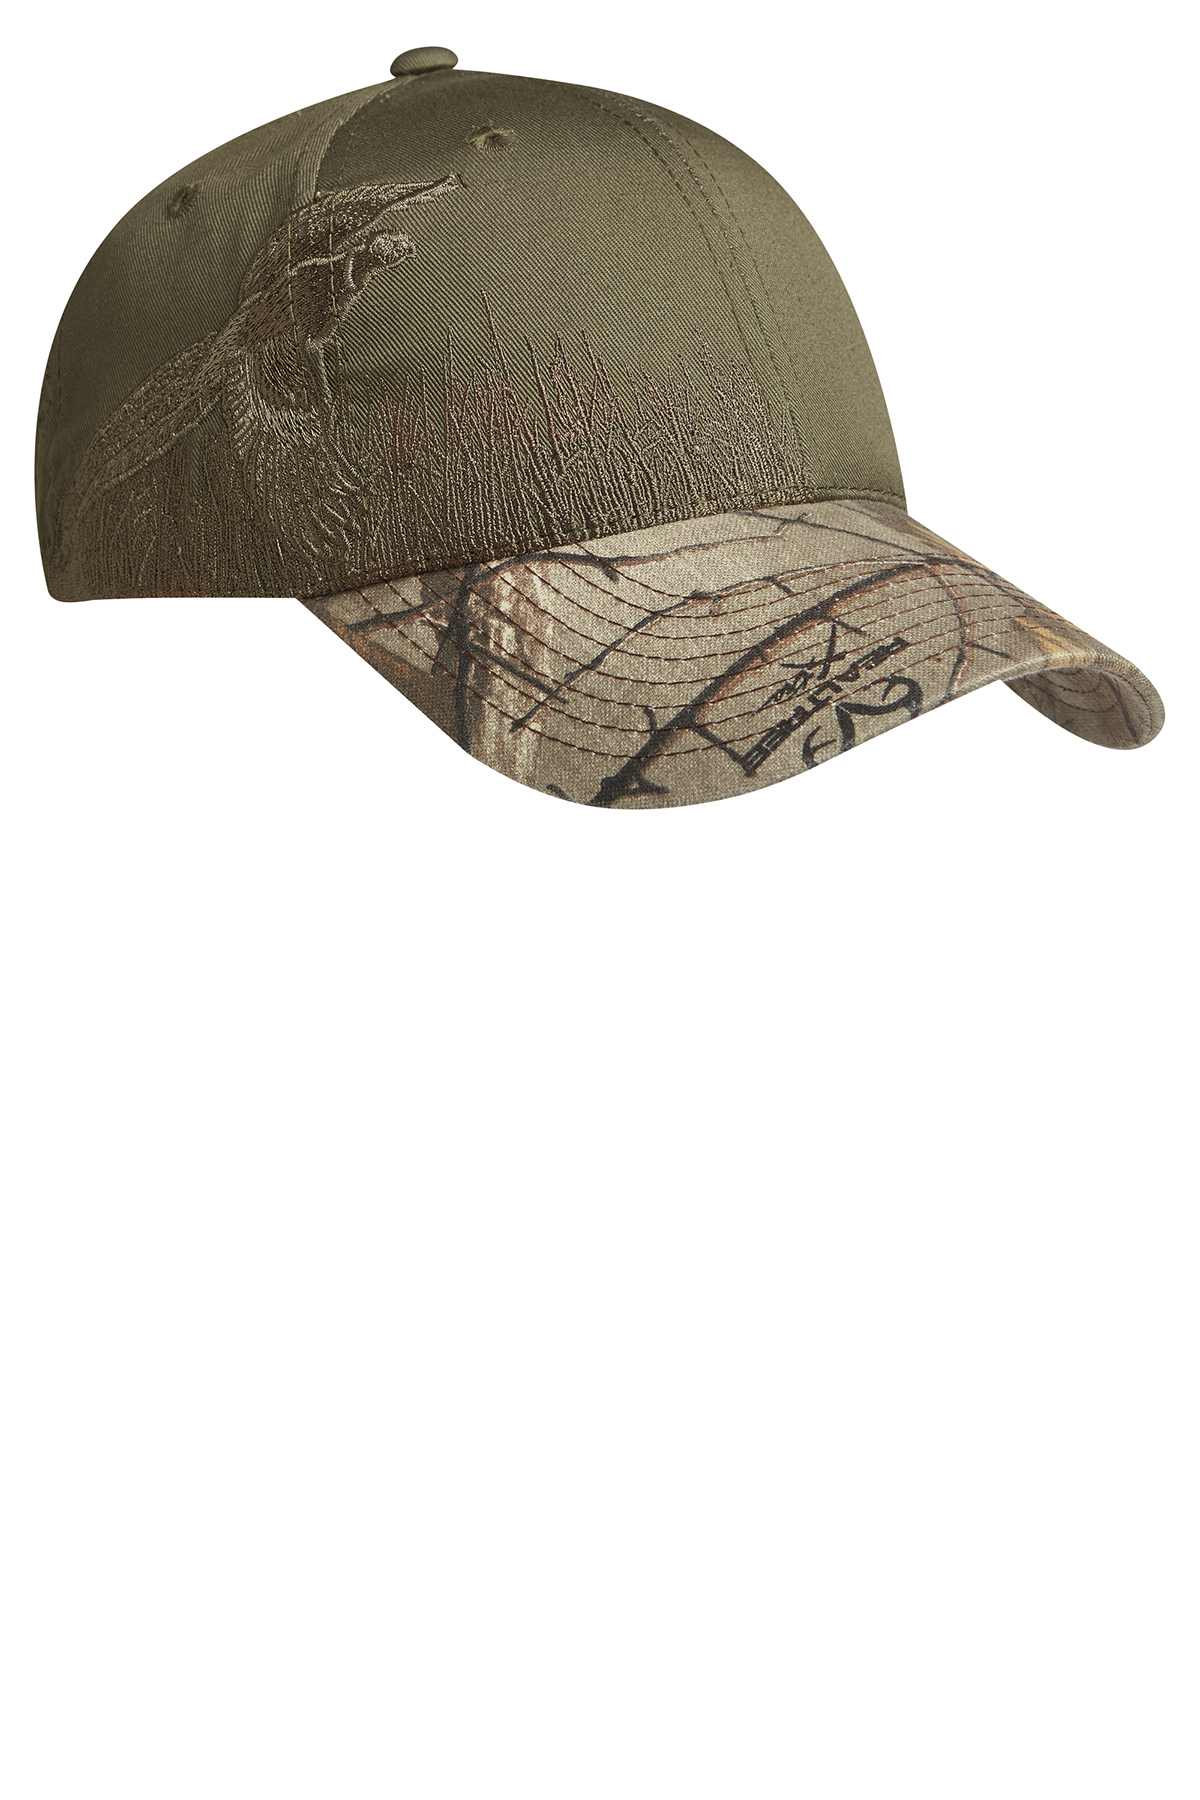 click to view Realtree Xtra/Seamoss/Pheasant